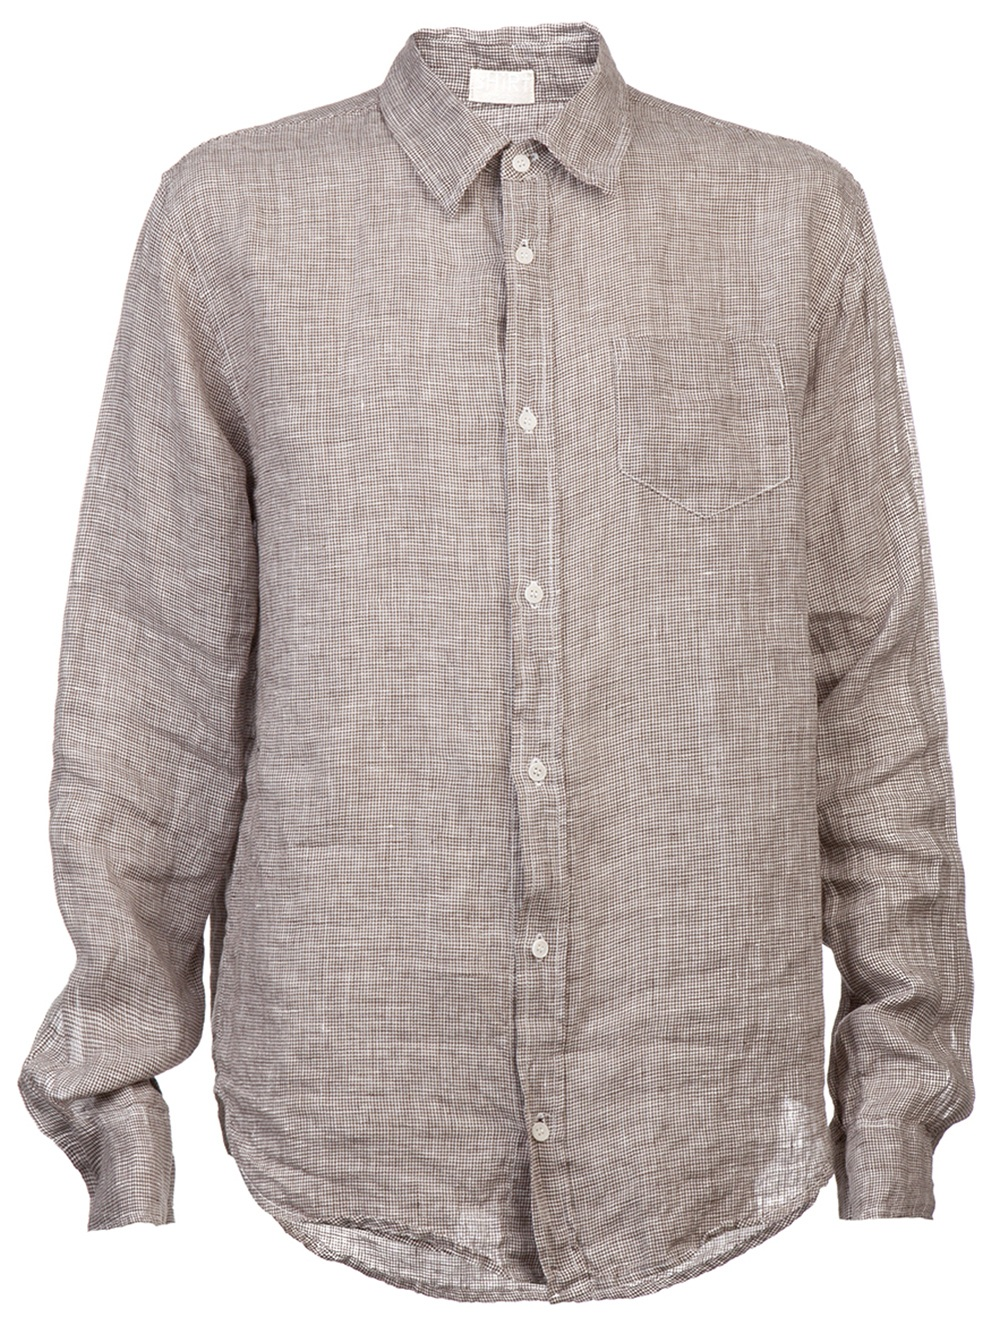 Cp Shades Fitted Linen Shirt In Brown For Men Lyst